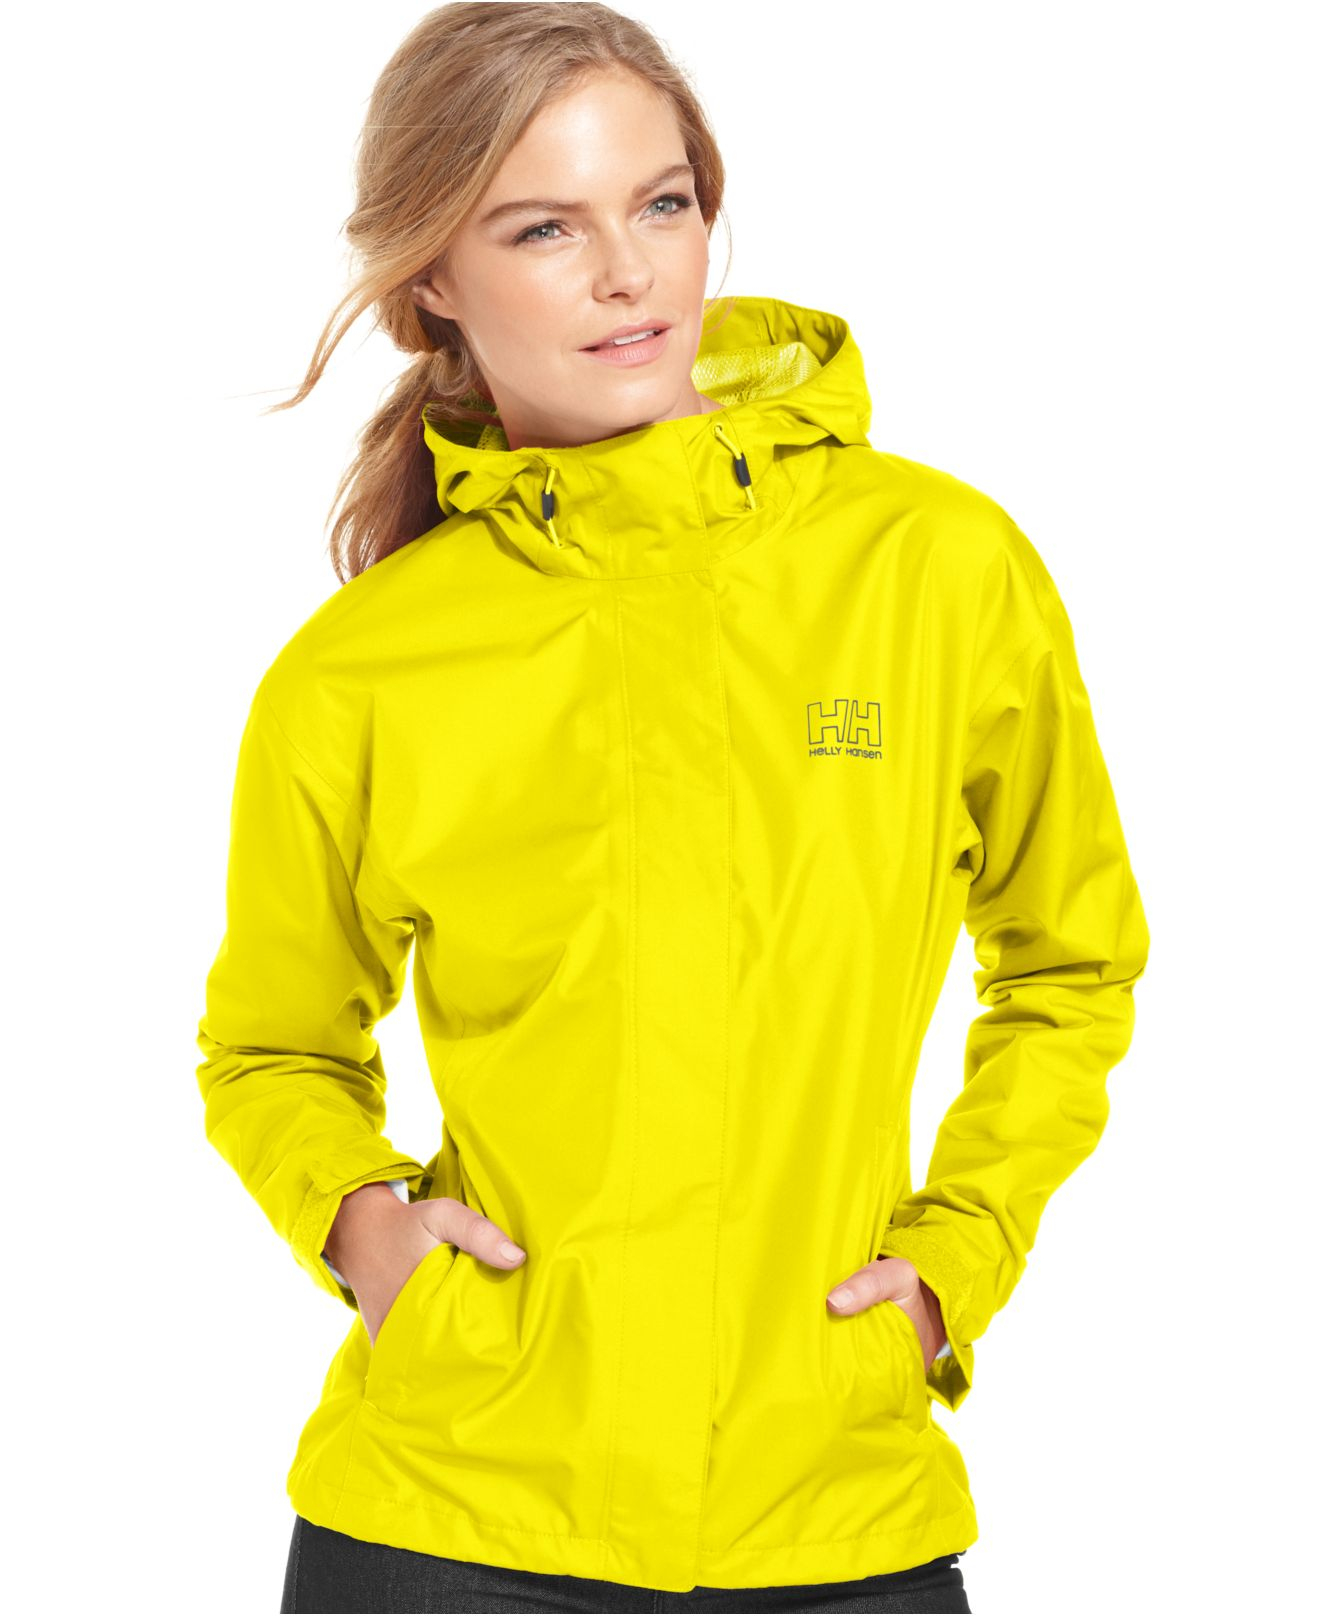 468c1c69c95 Lyst helly hansen seven hooded rain jacket in yellow jpg 1320x1616 Helly  hansen raincoats for women